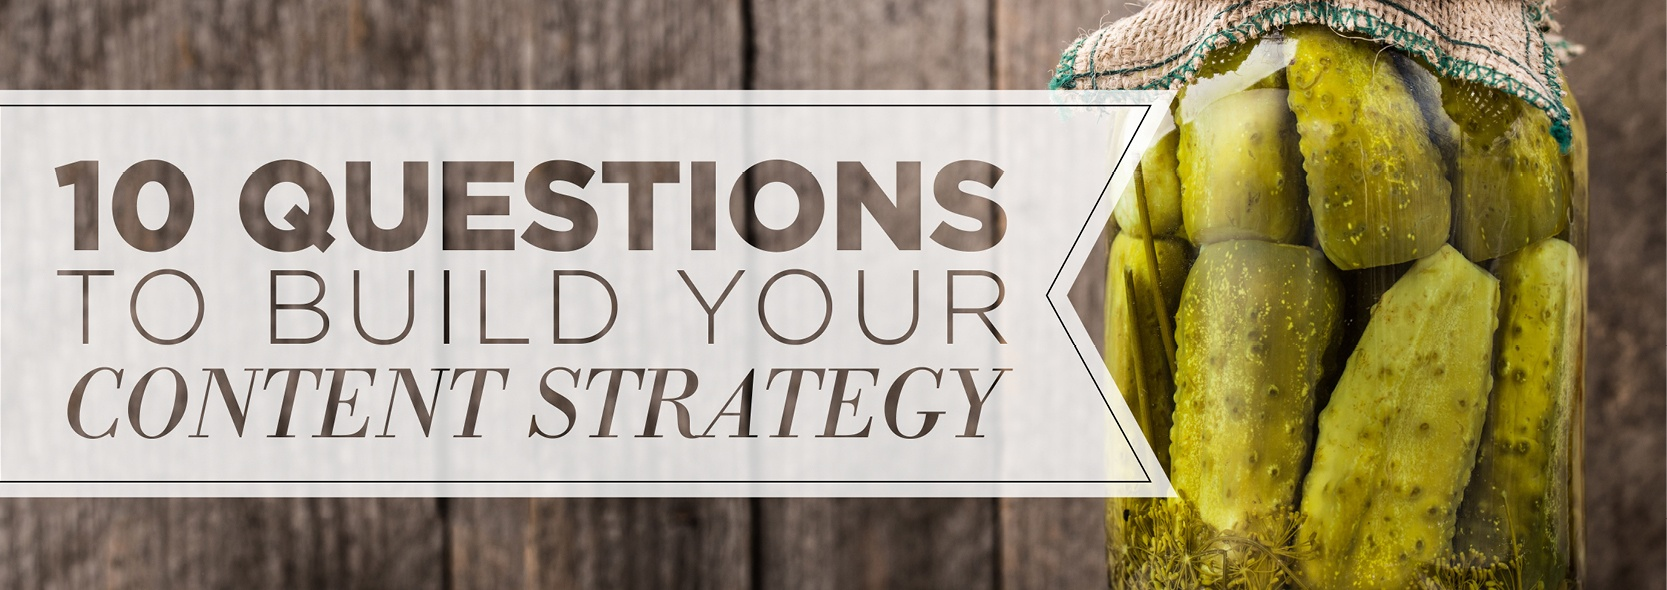 10 Questions to Build Your Content Strategy